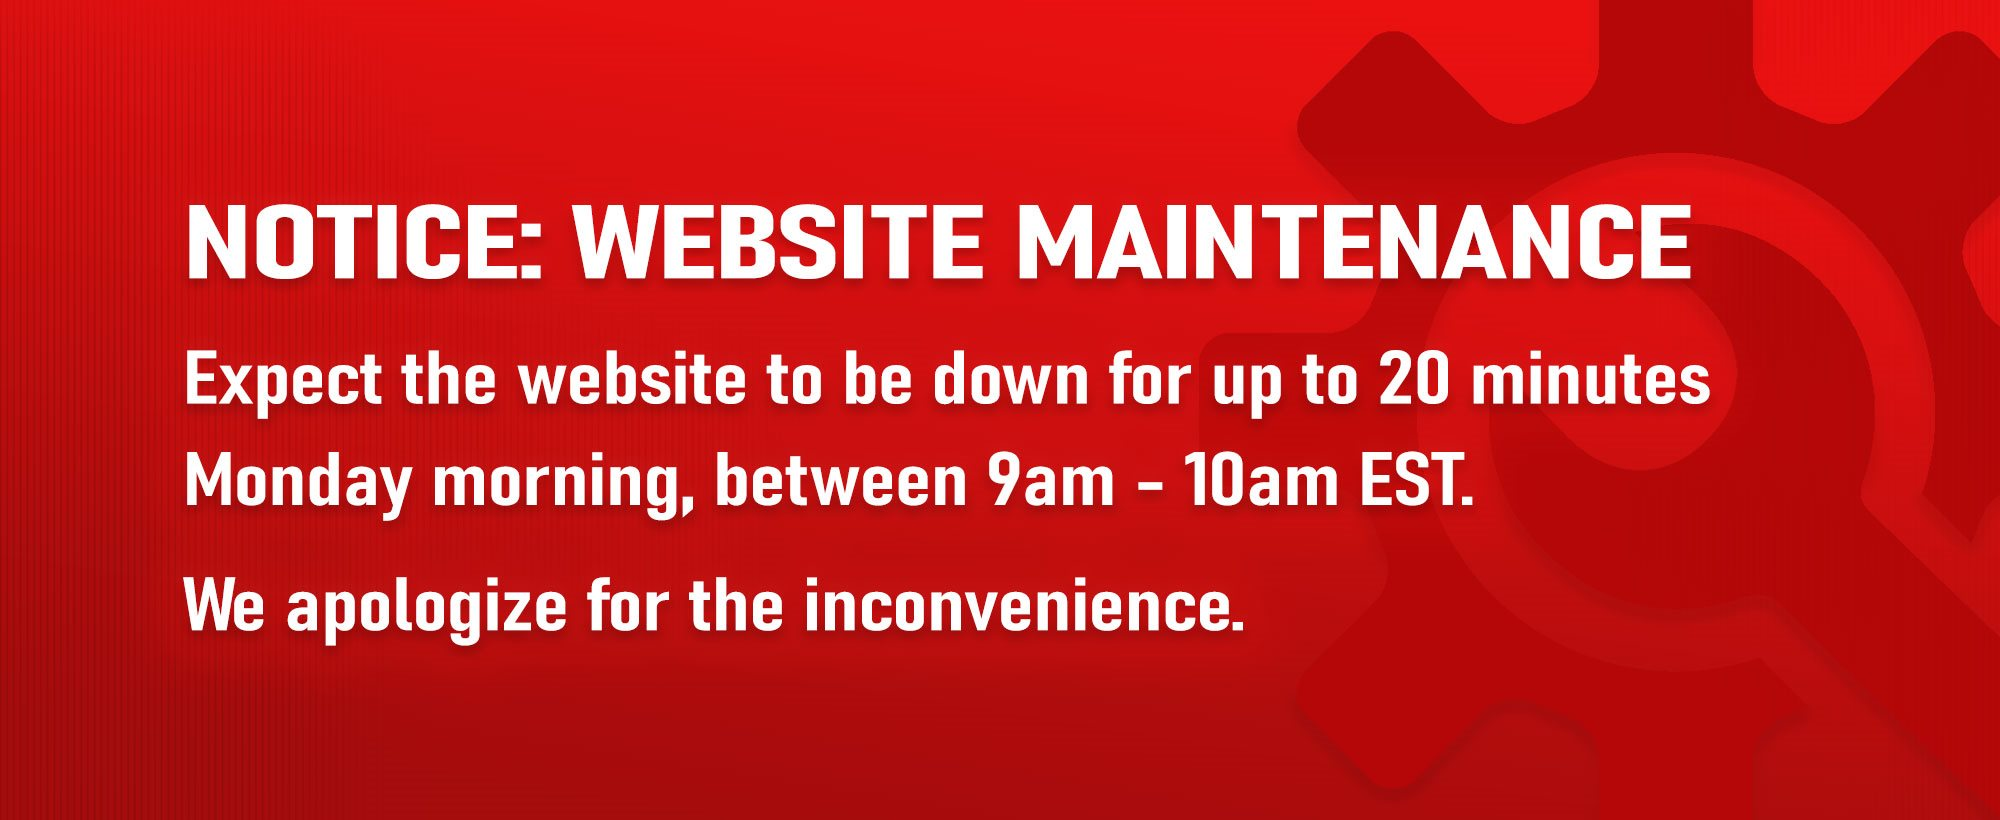 Notice: Website Maintenance...Expect the website to be down for up to